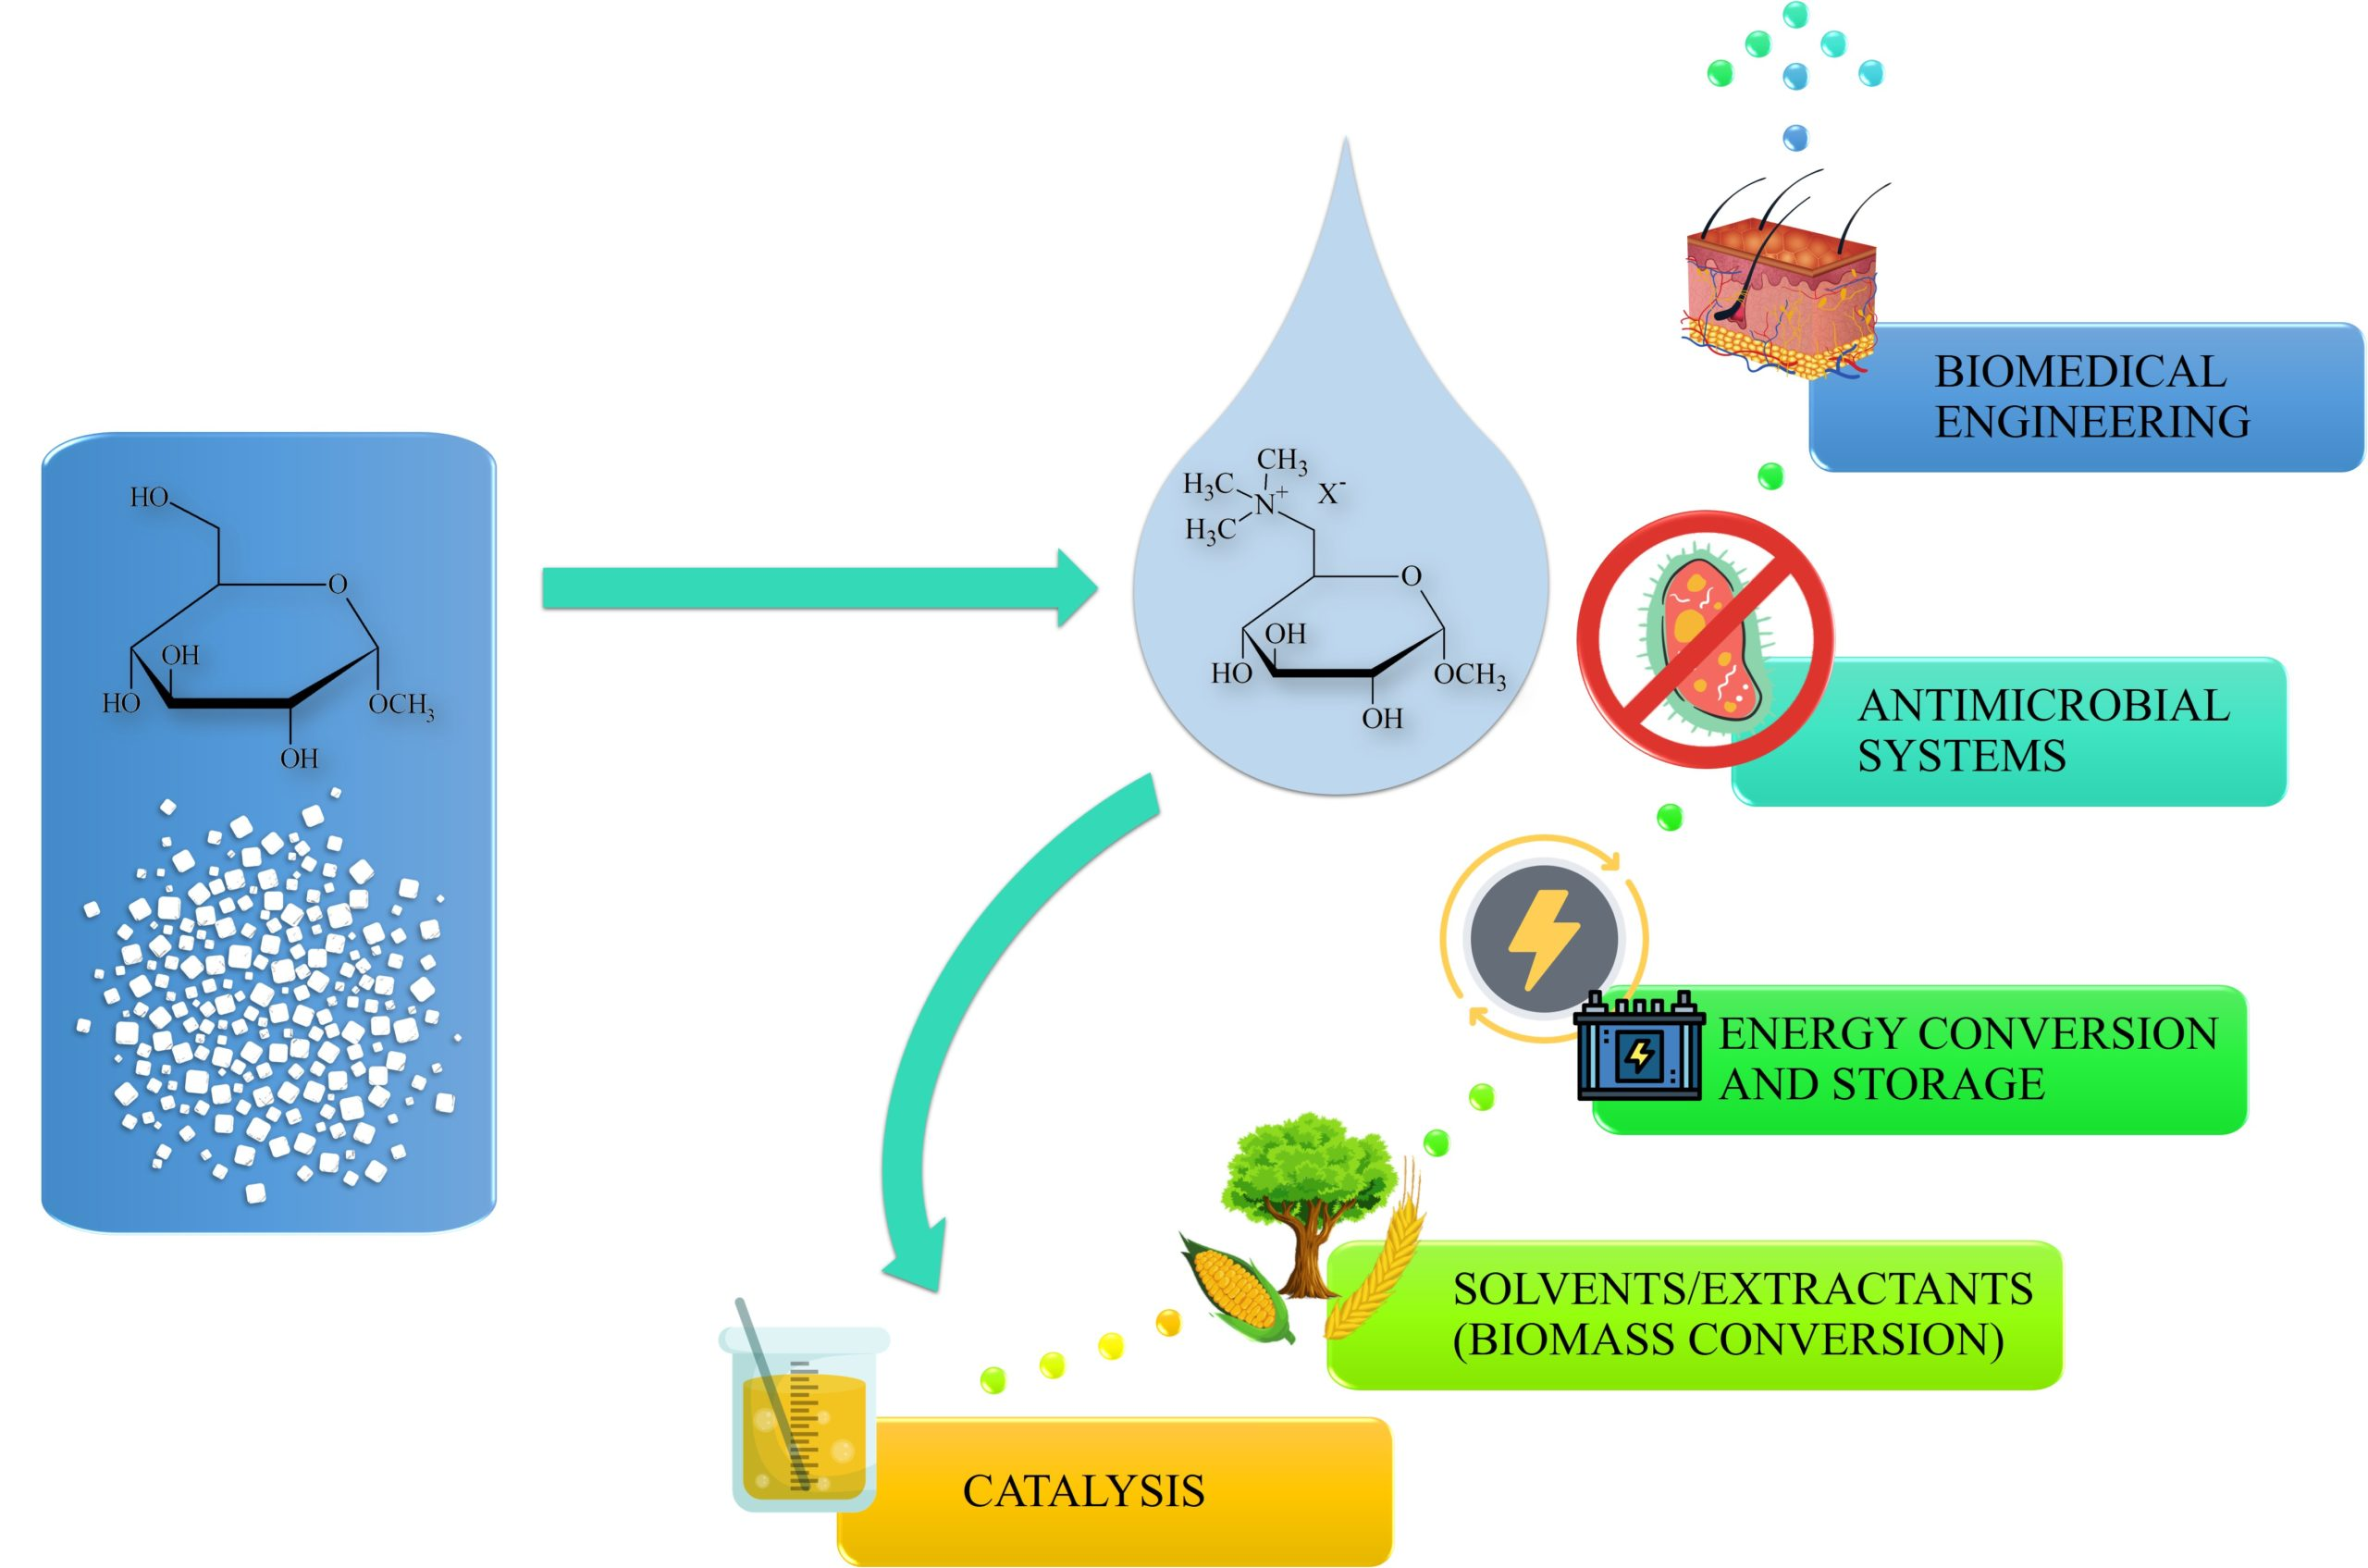 Review article on carbohydrate-derived ionic liquids in Molecules!